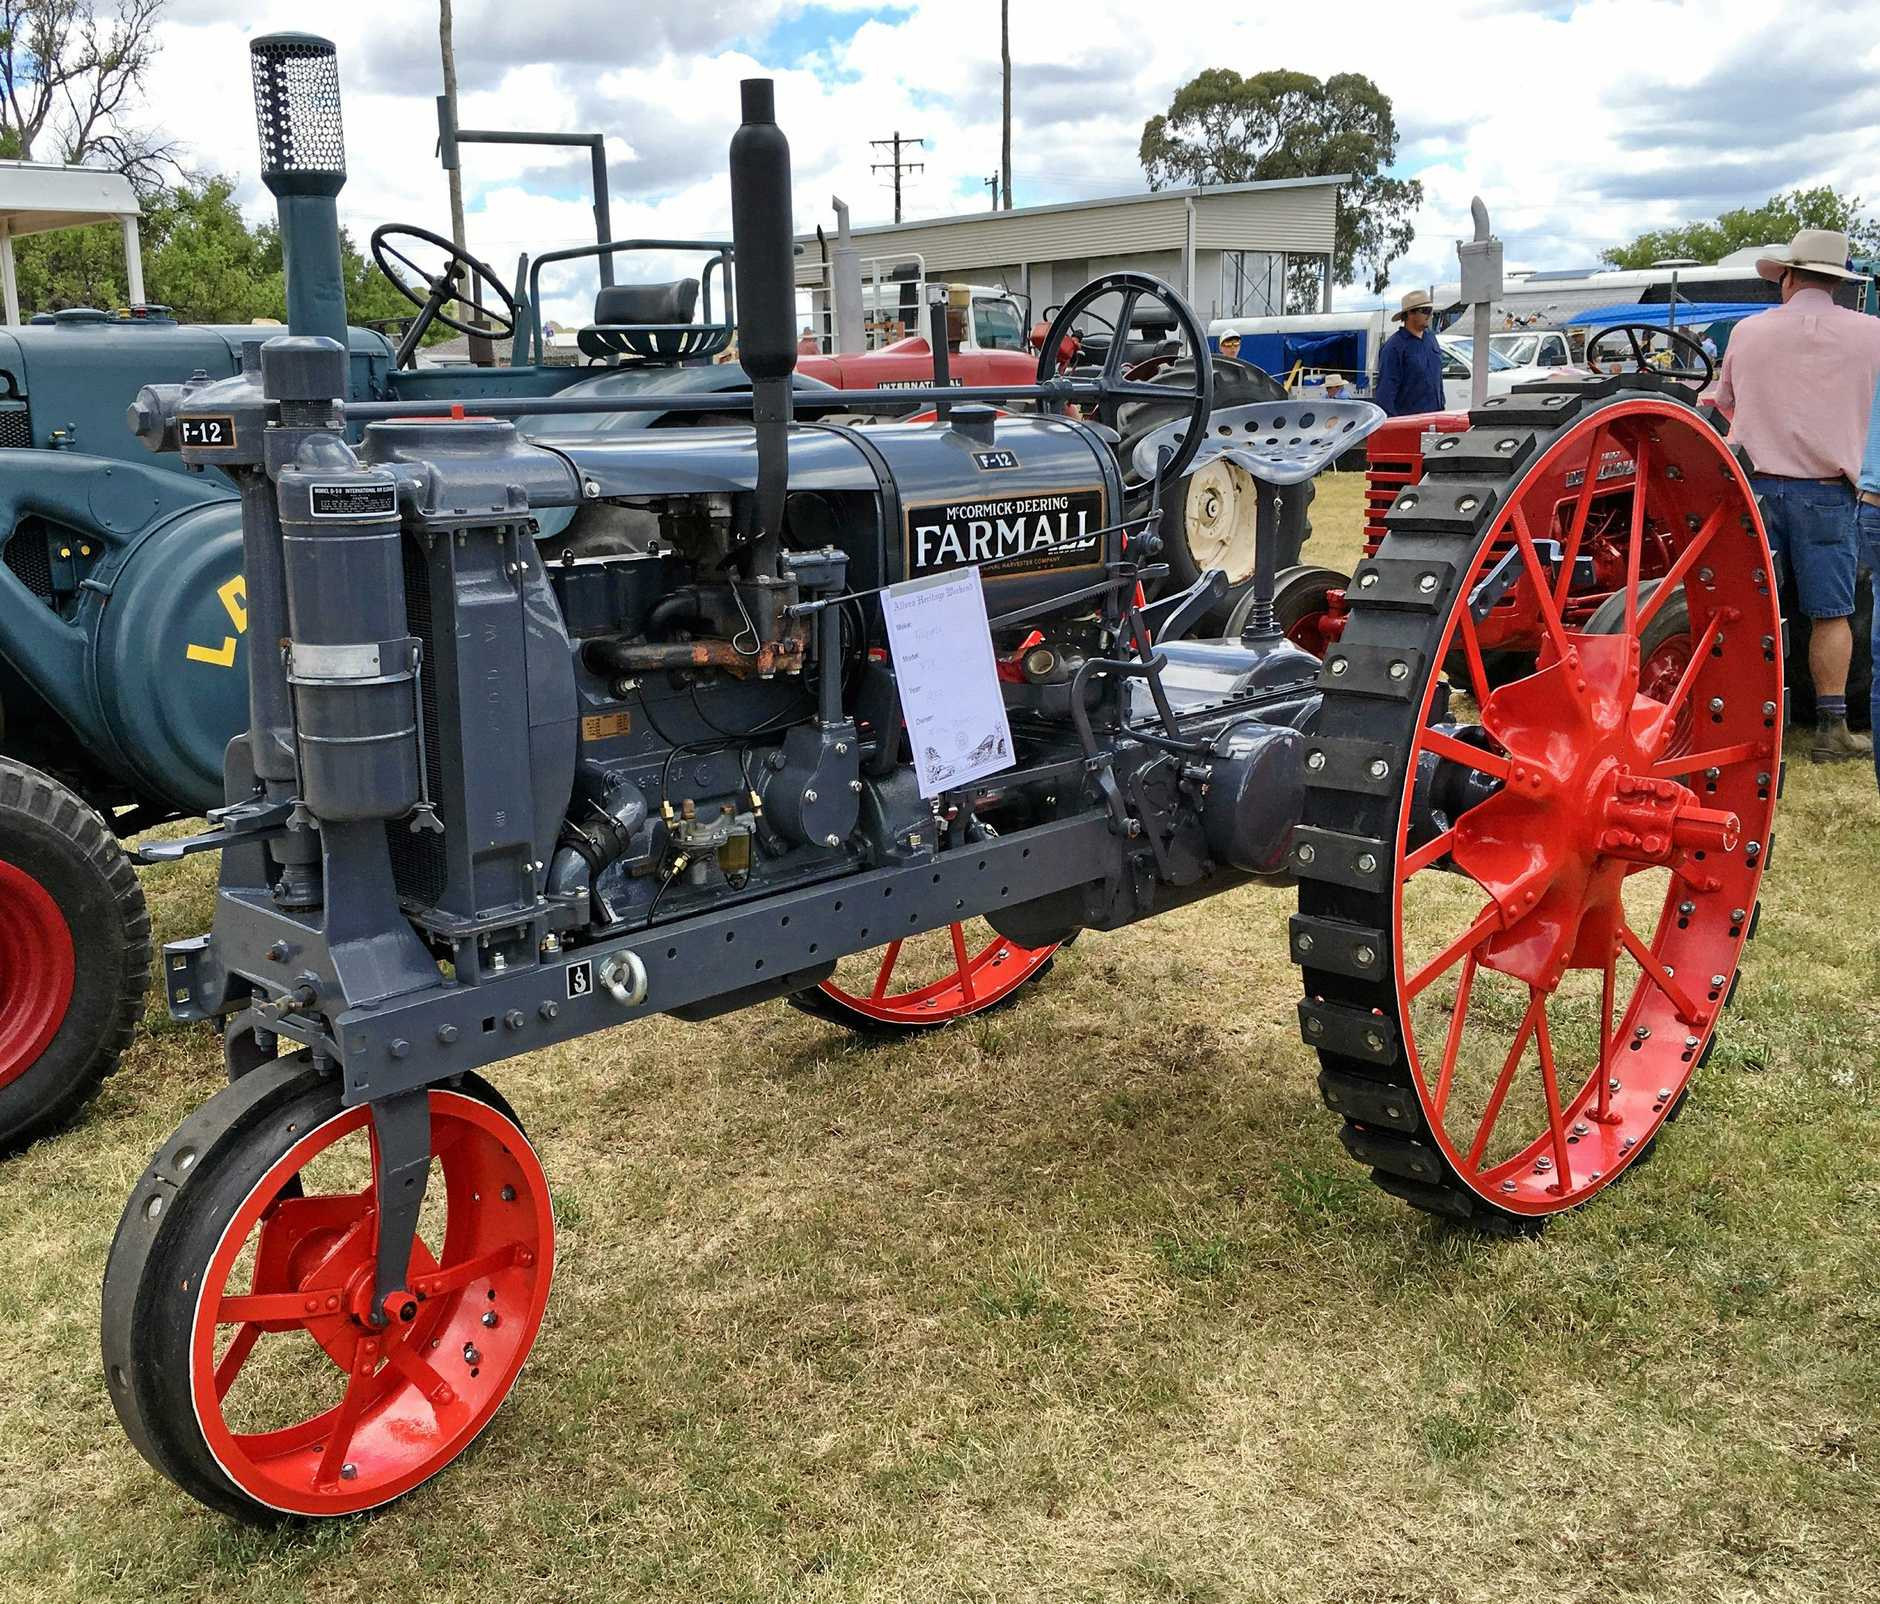 A magnificently restored 1933 Farmall F12 tractor is just one example of over 250 tractor exhibitions that will take place in the Heritage Weekend tractor parade.